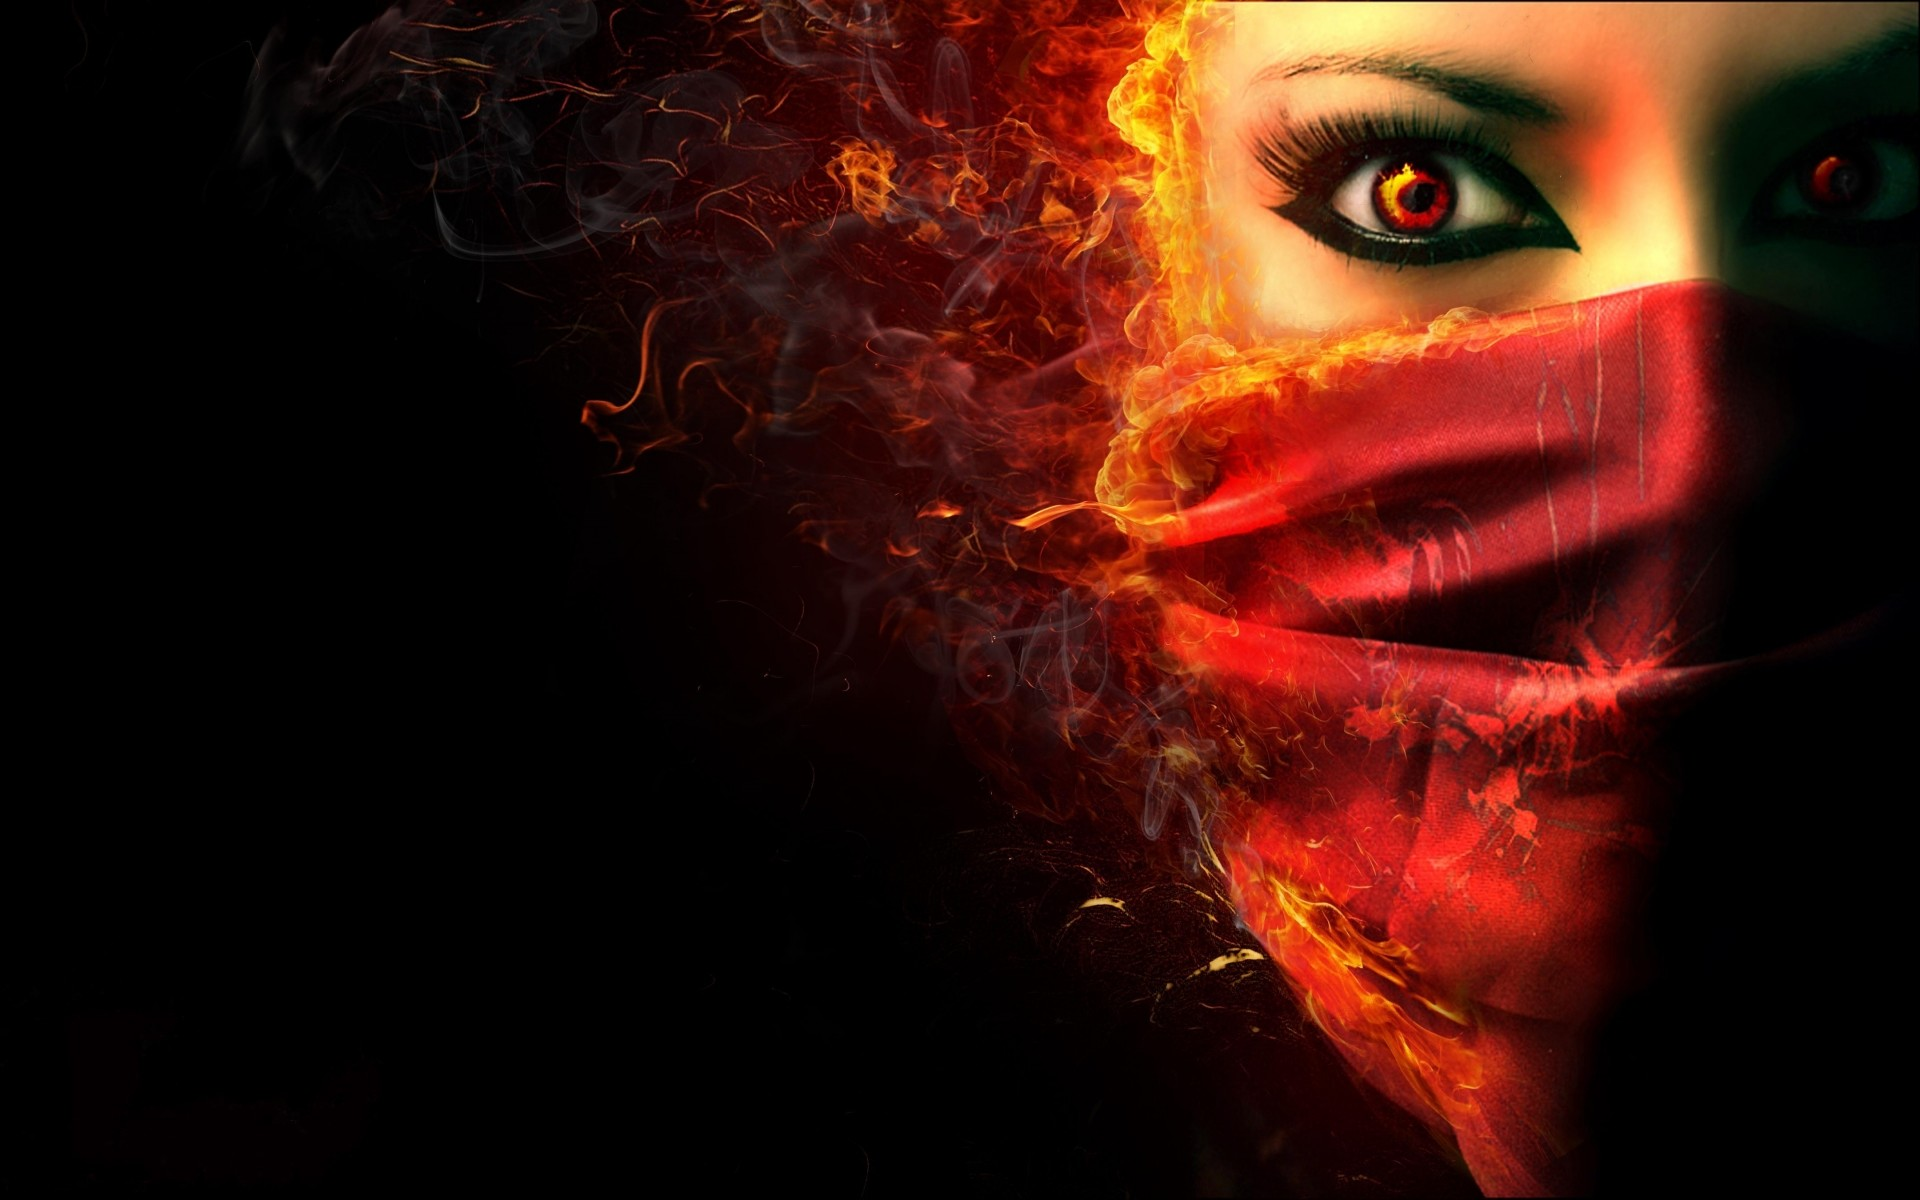 Res: 1920x1200, Awesome Evil Demon HD Wallpaper Pack 766 › Free Download